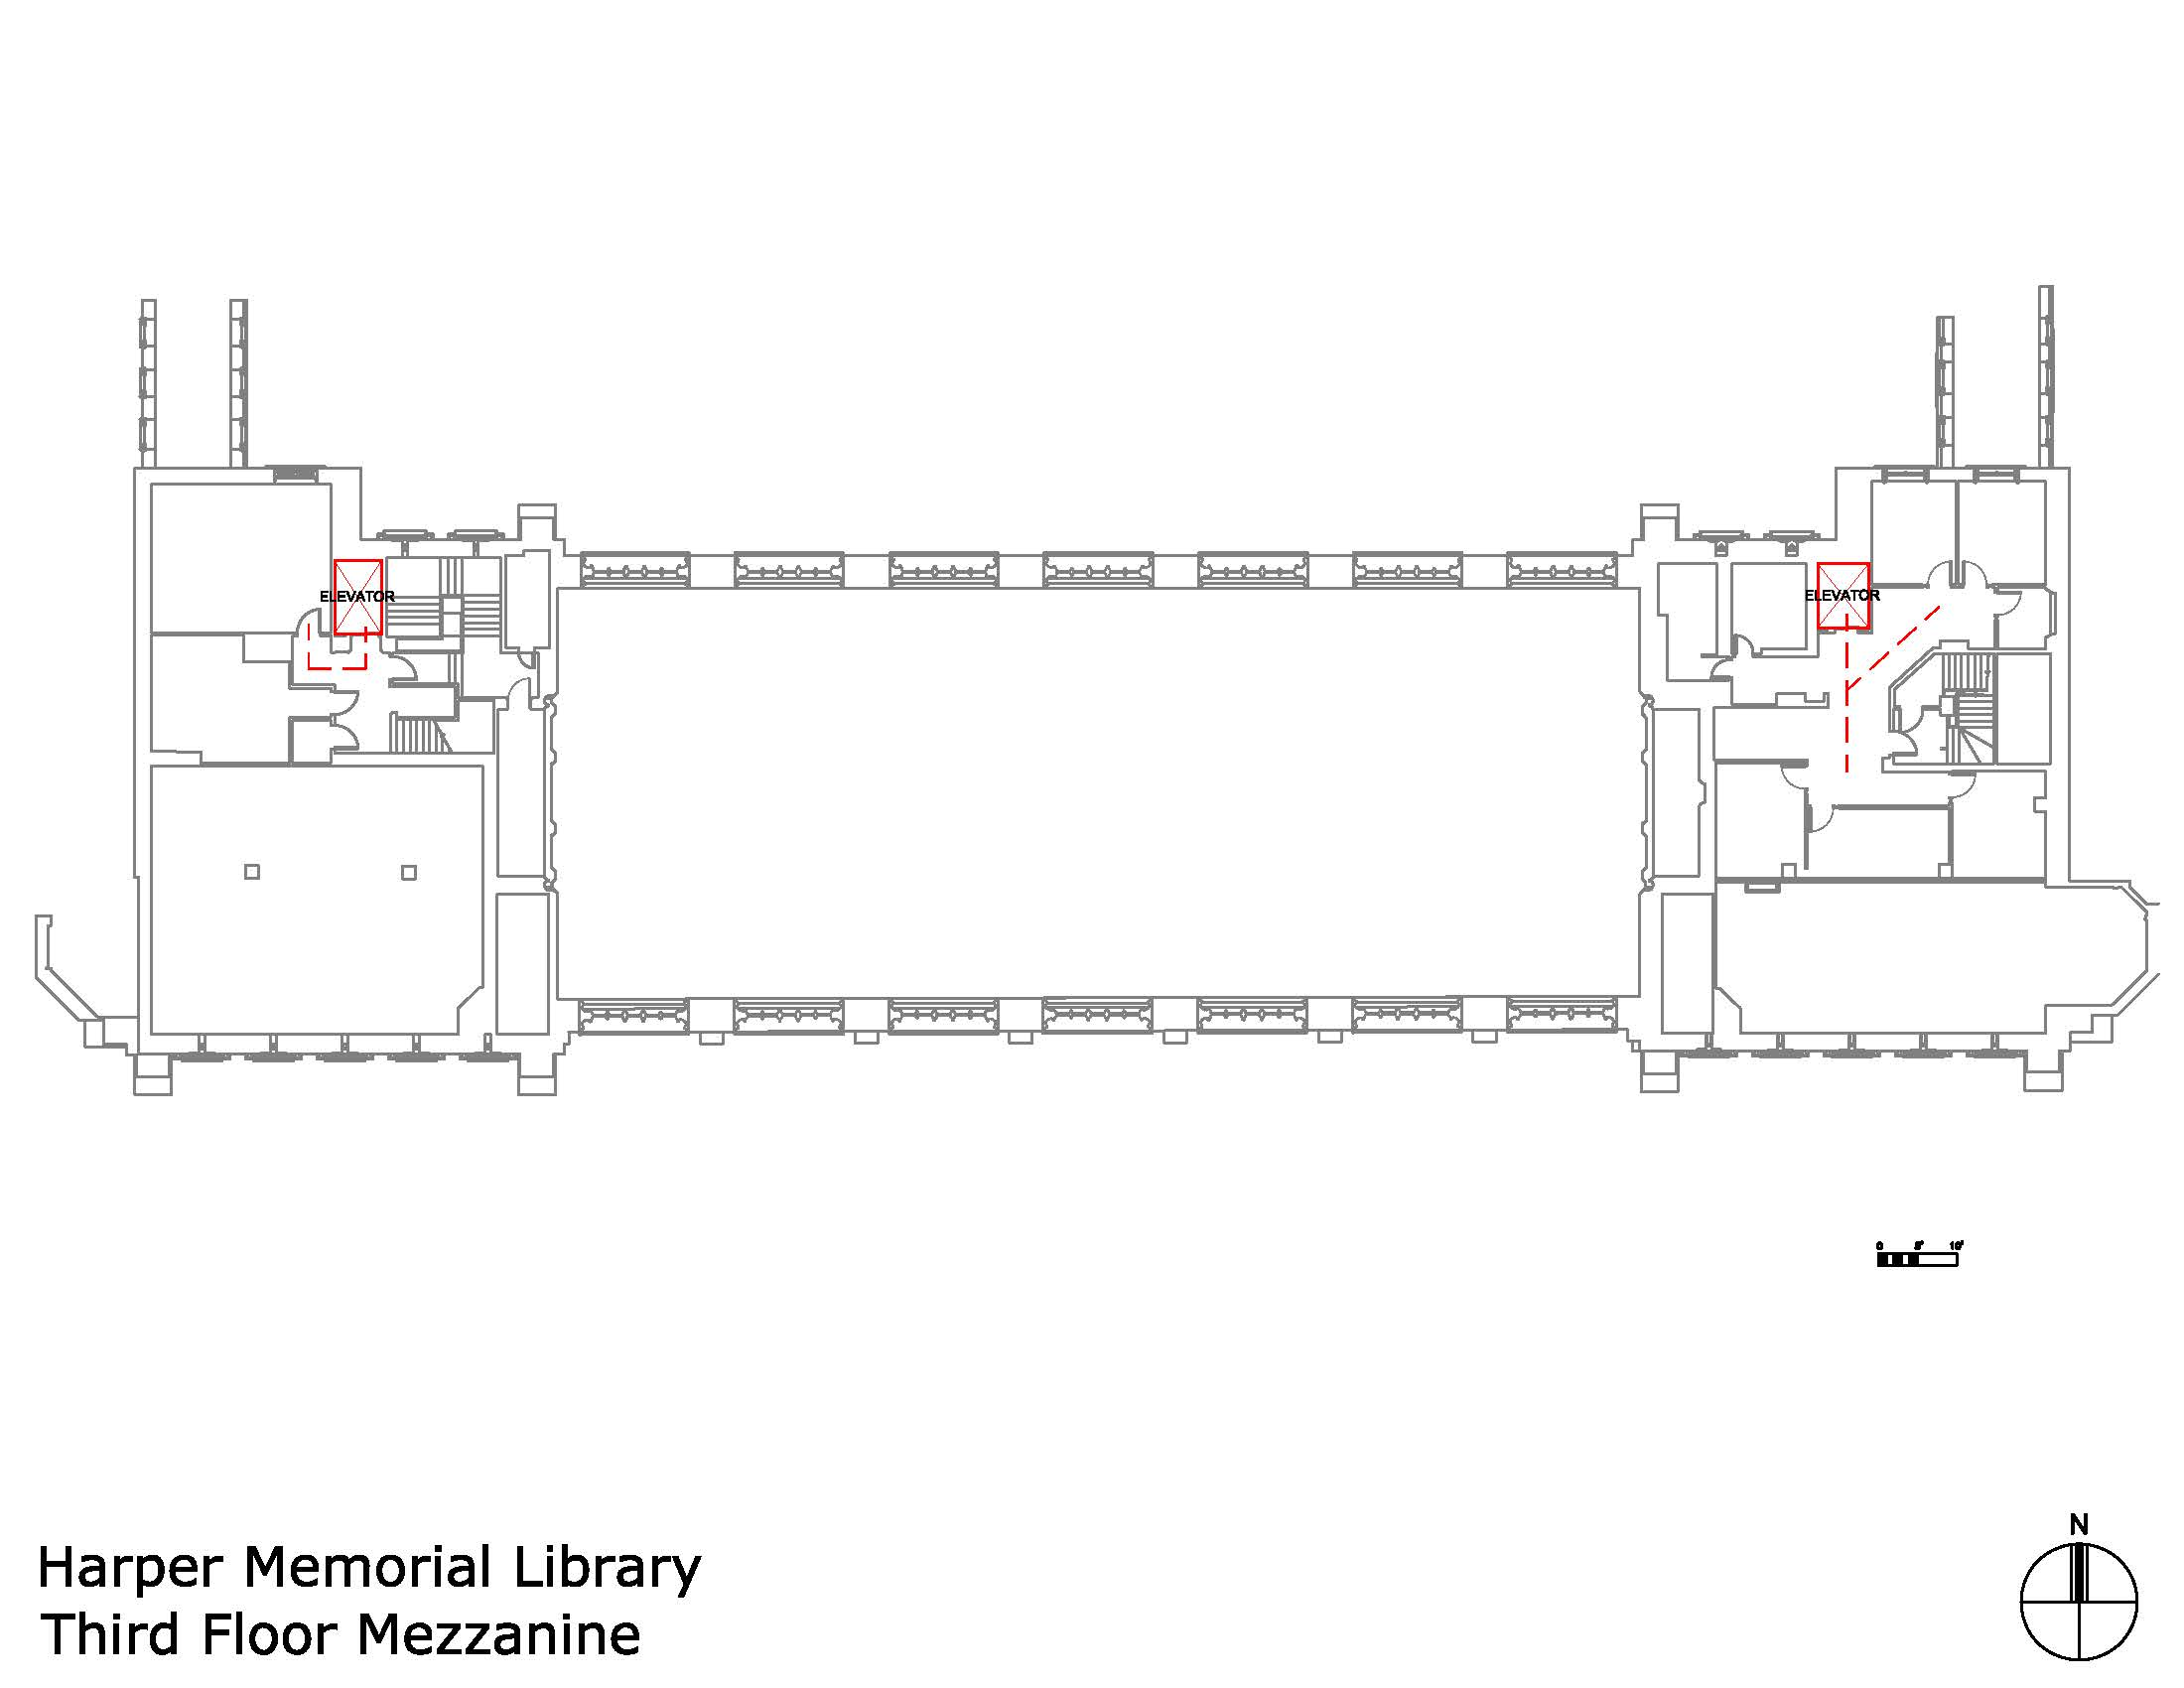 Harper Memorial Library third floor mezzanine accessible areas